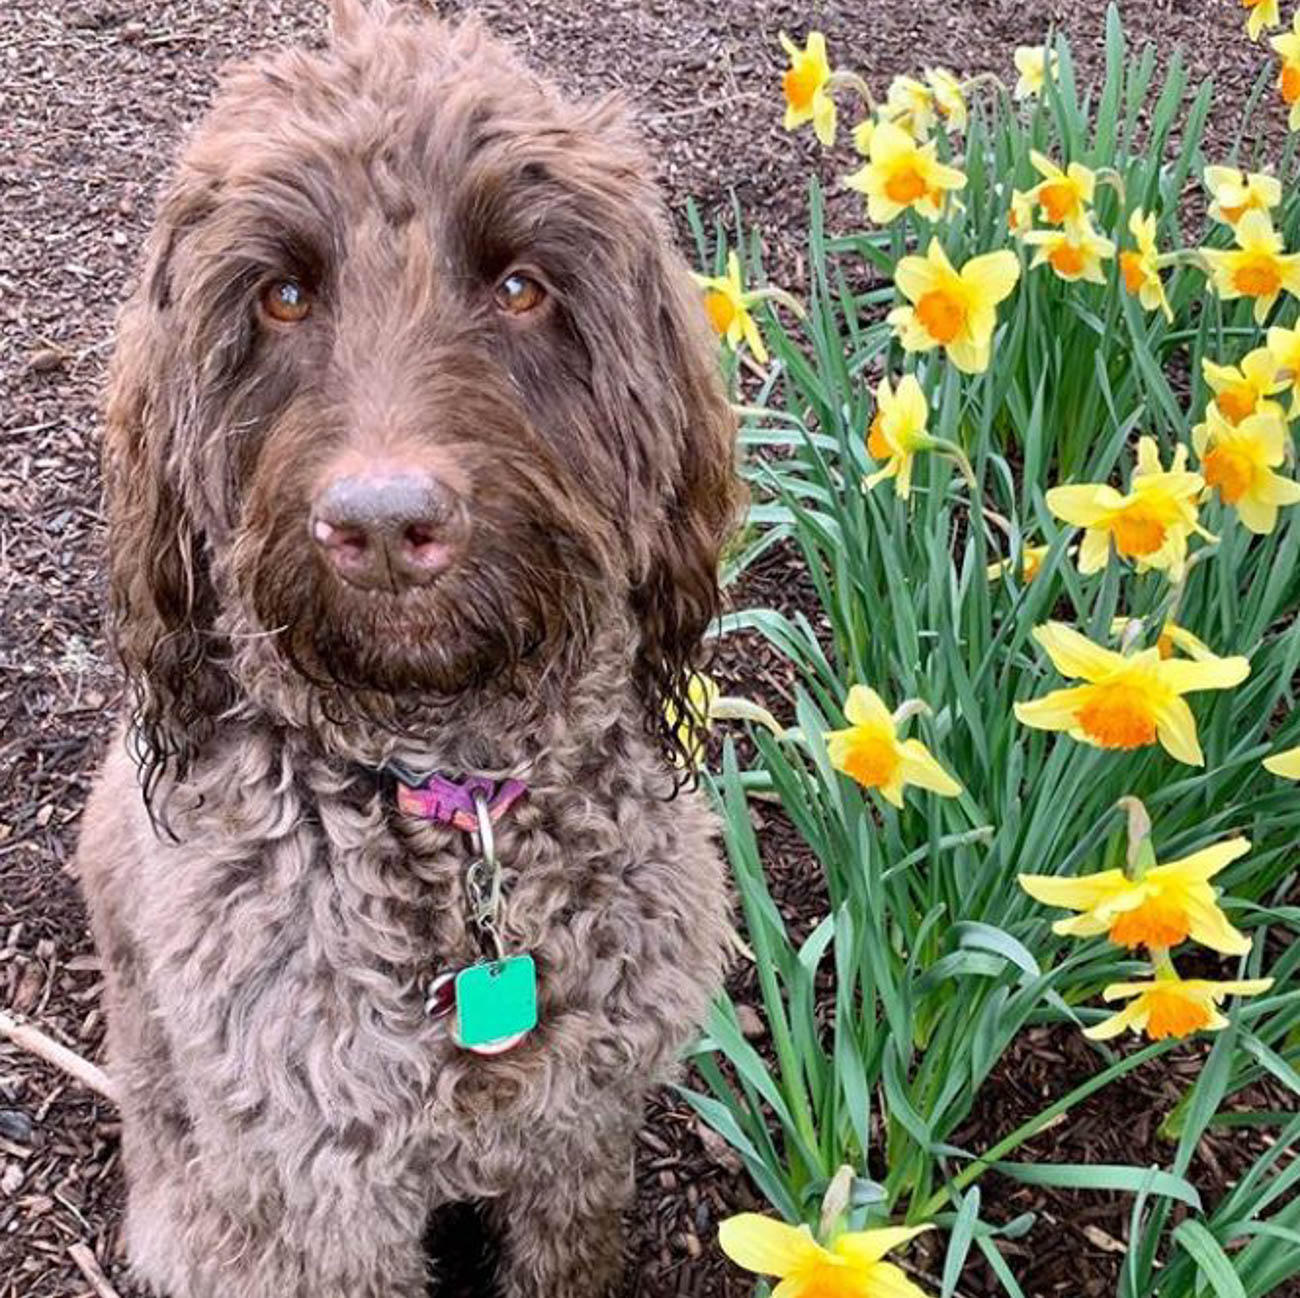 Stopping to smell the flowers / Image courtesy of Instagram user @rosewooddaisydoodle // Published: 4.1.20